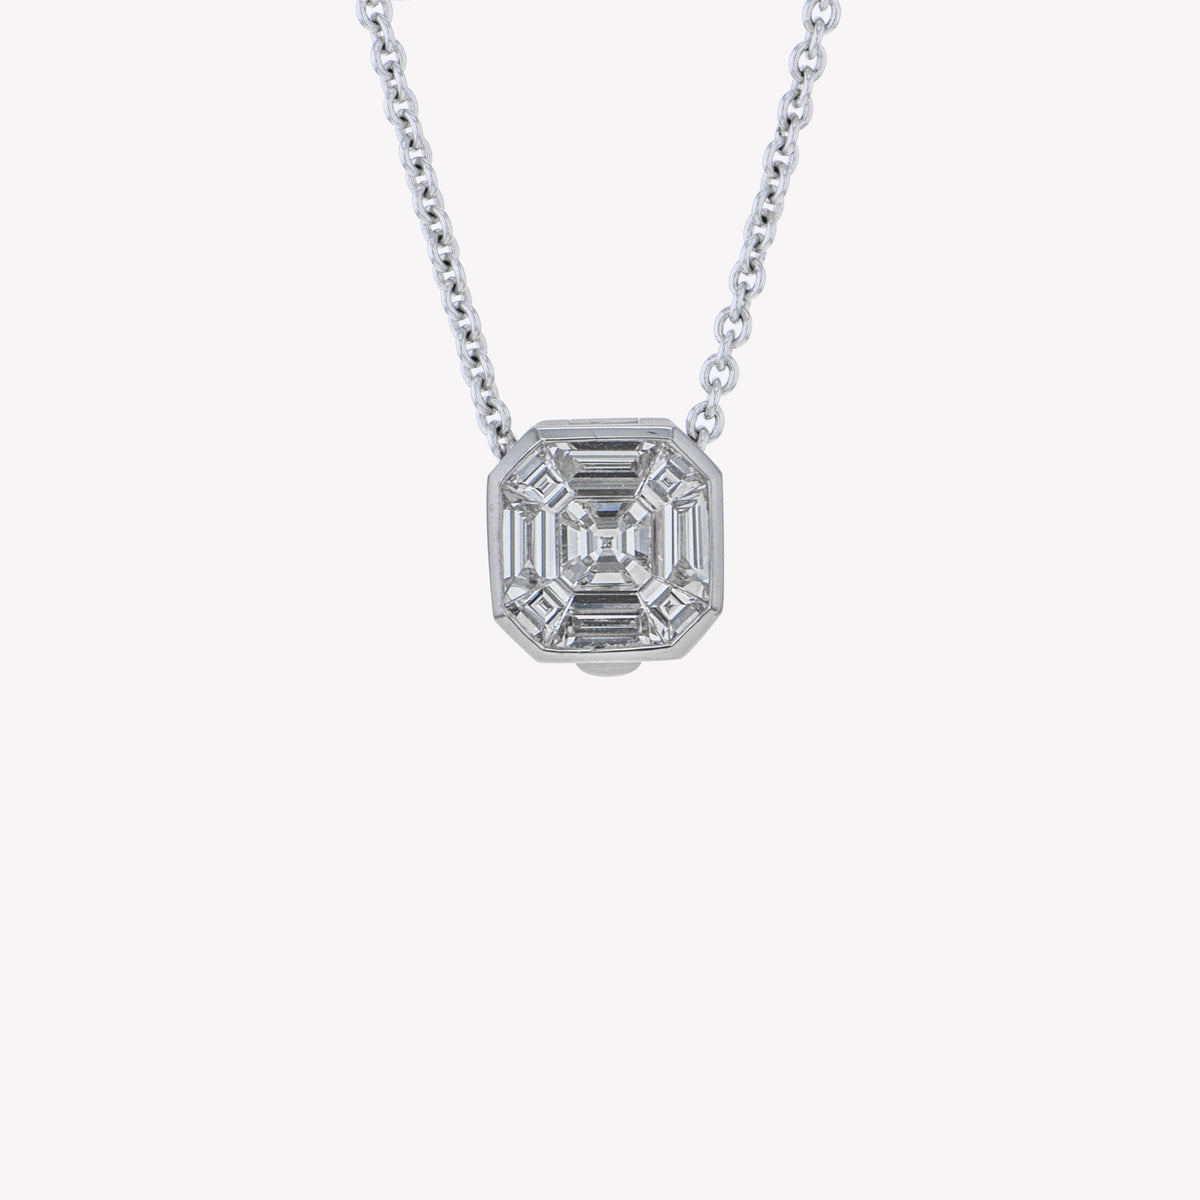 Detachable White Gold Asscher Head with Chain